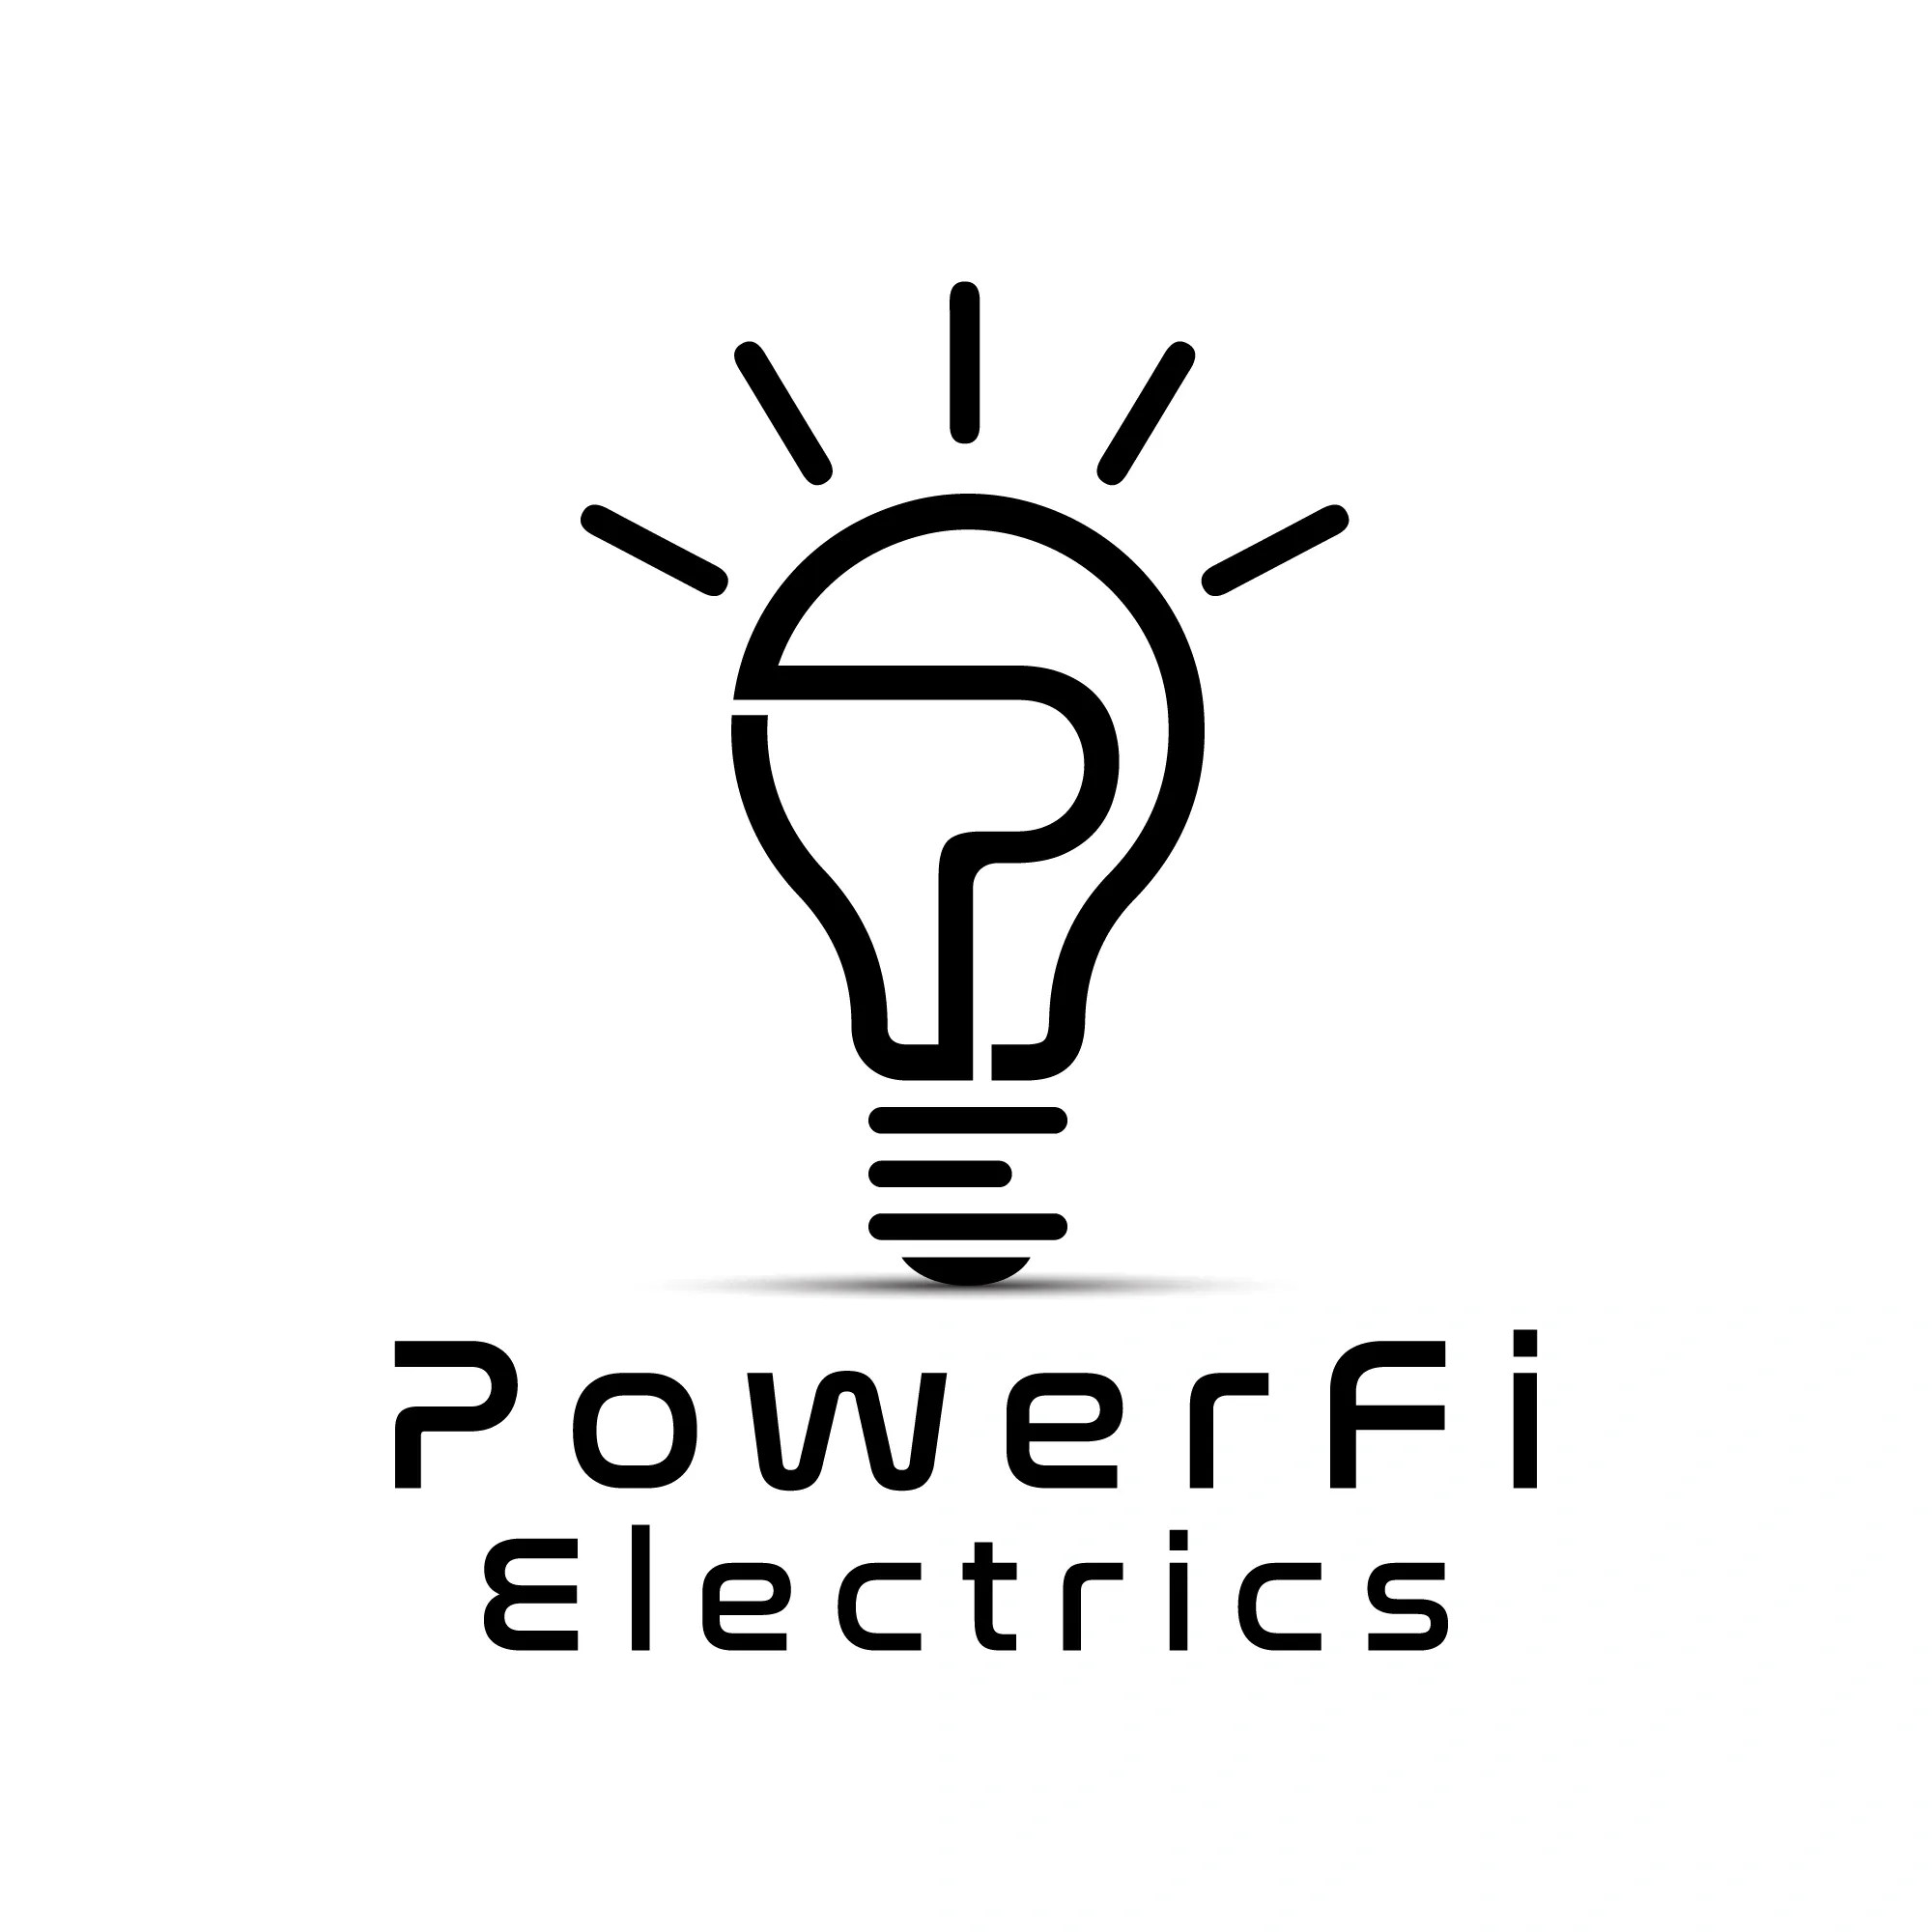 Powerfi Electrics